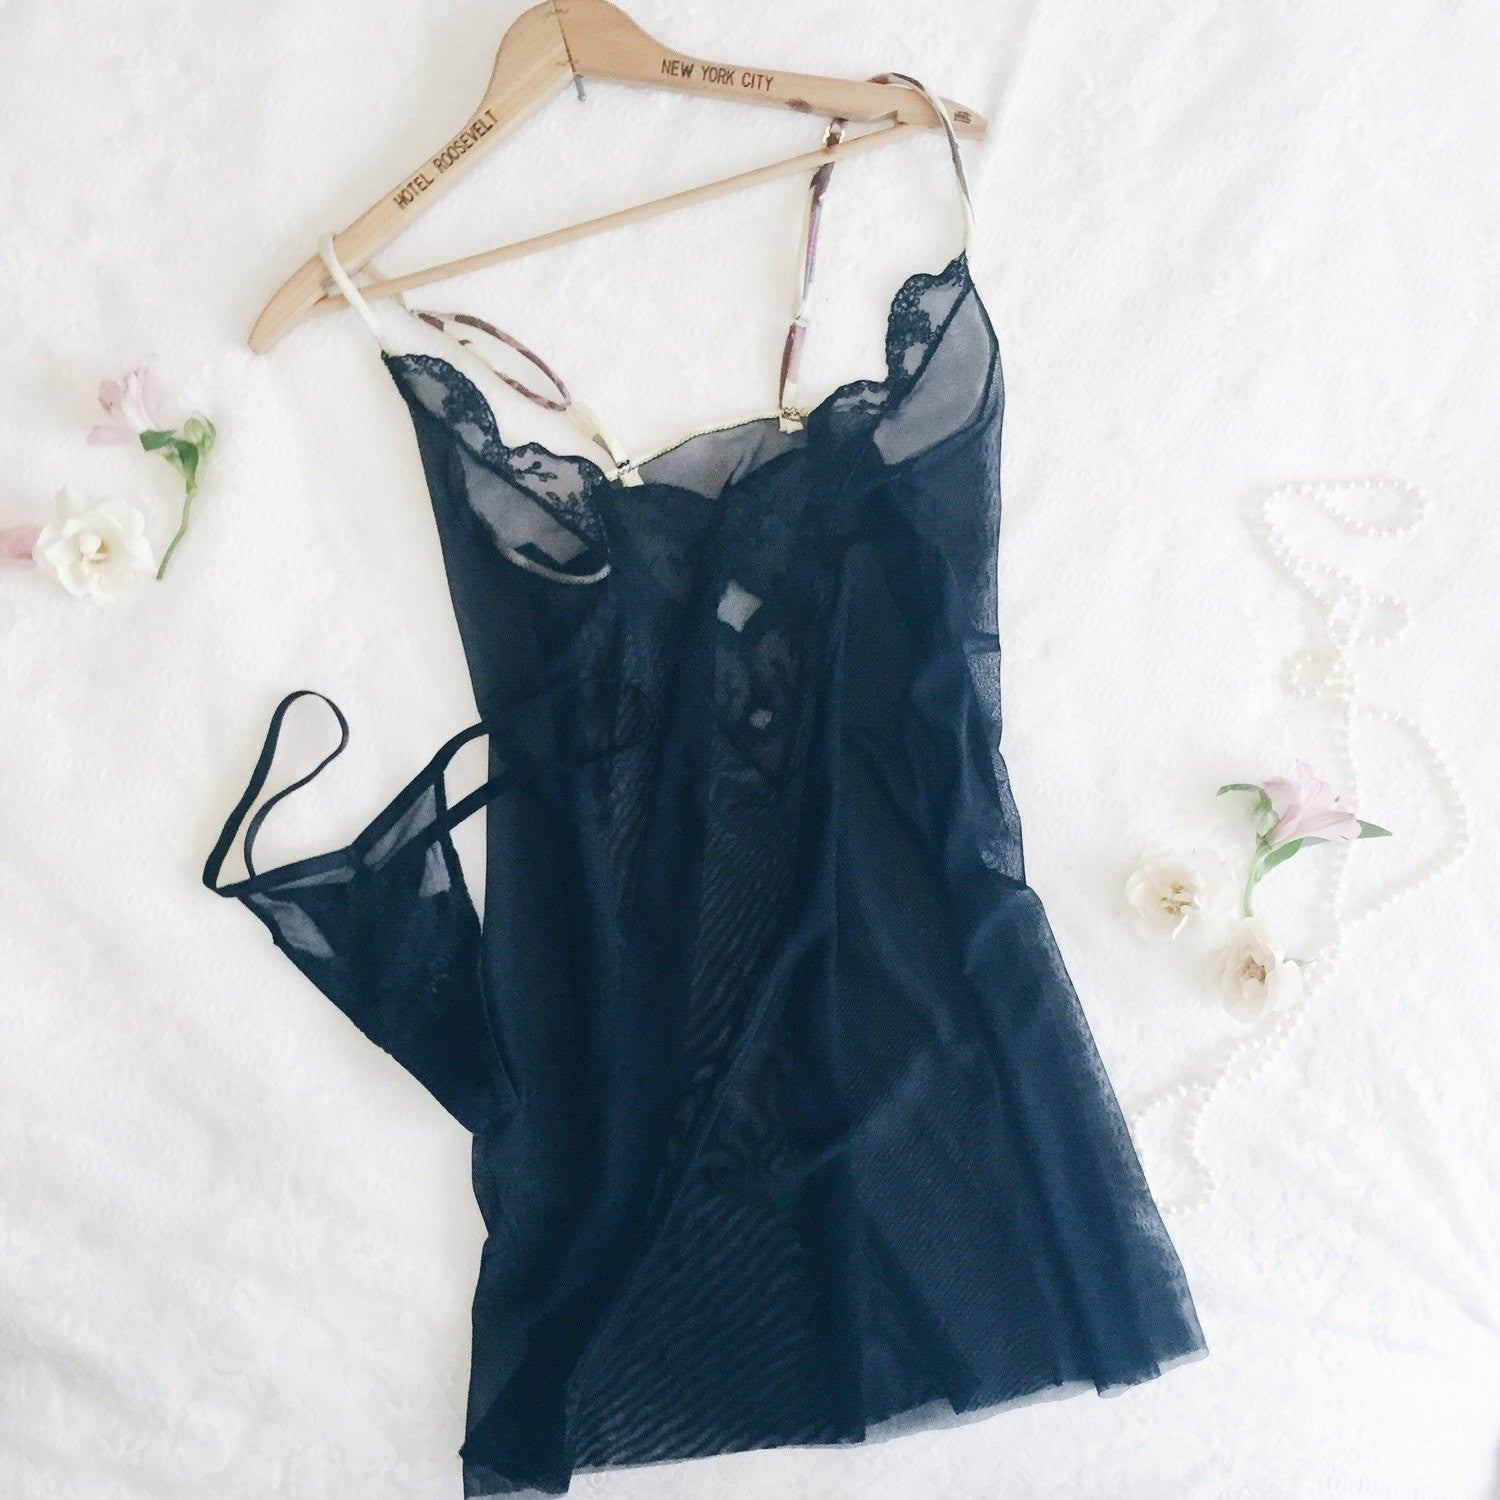 Larkspur - Astrid Chemise and Thong - Black